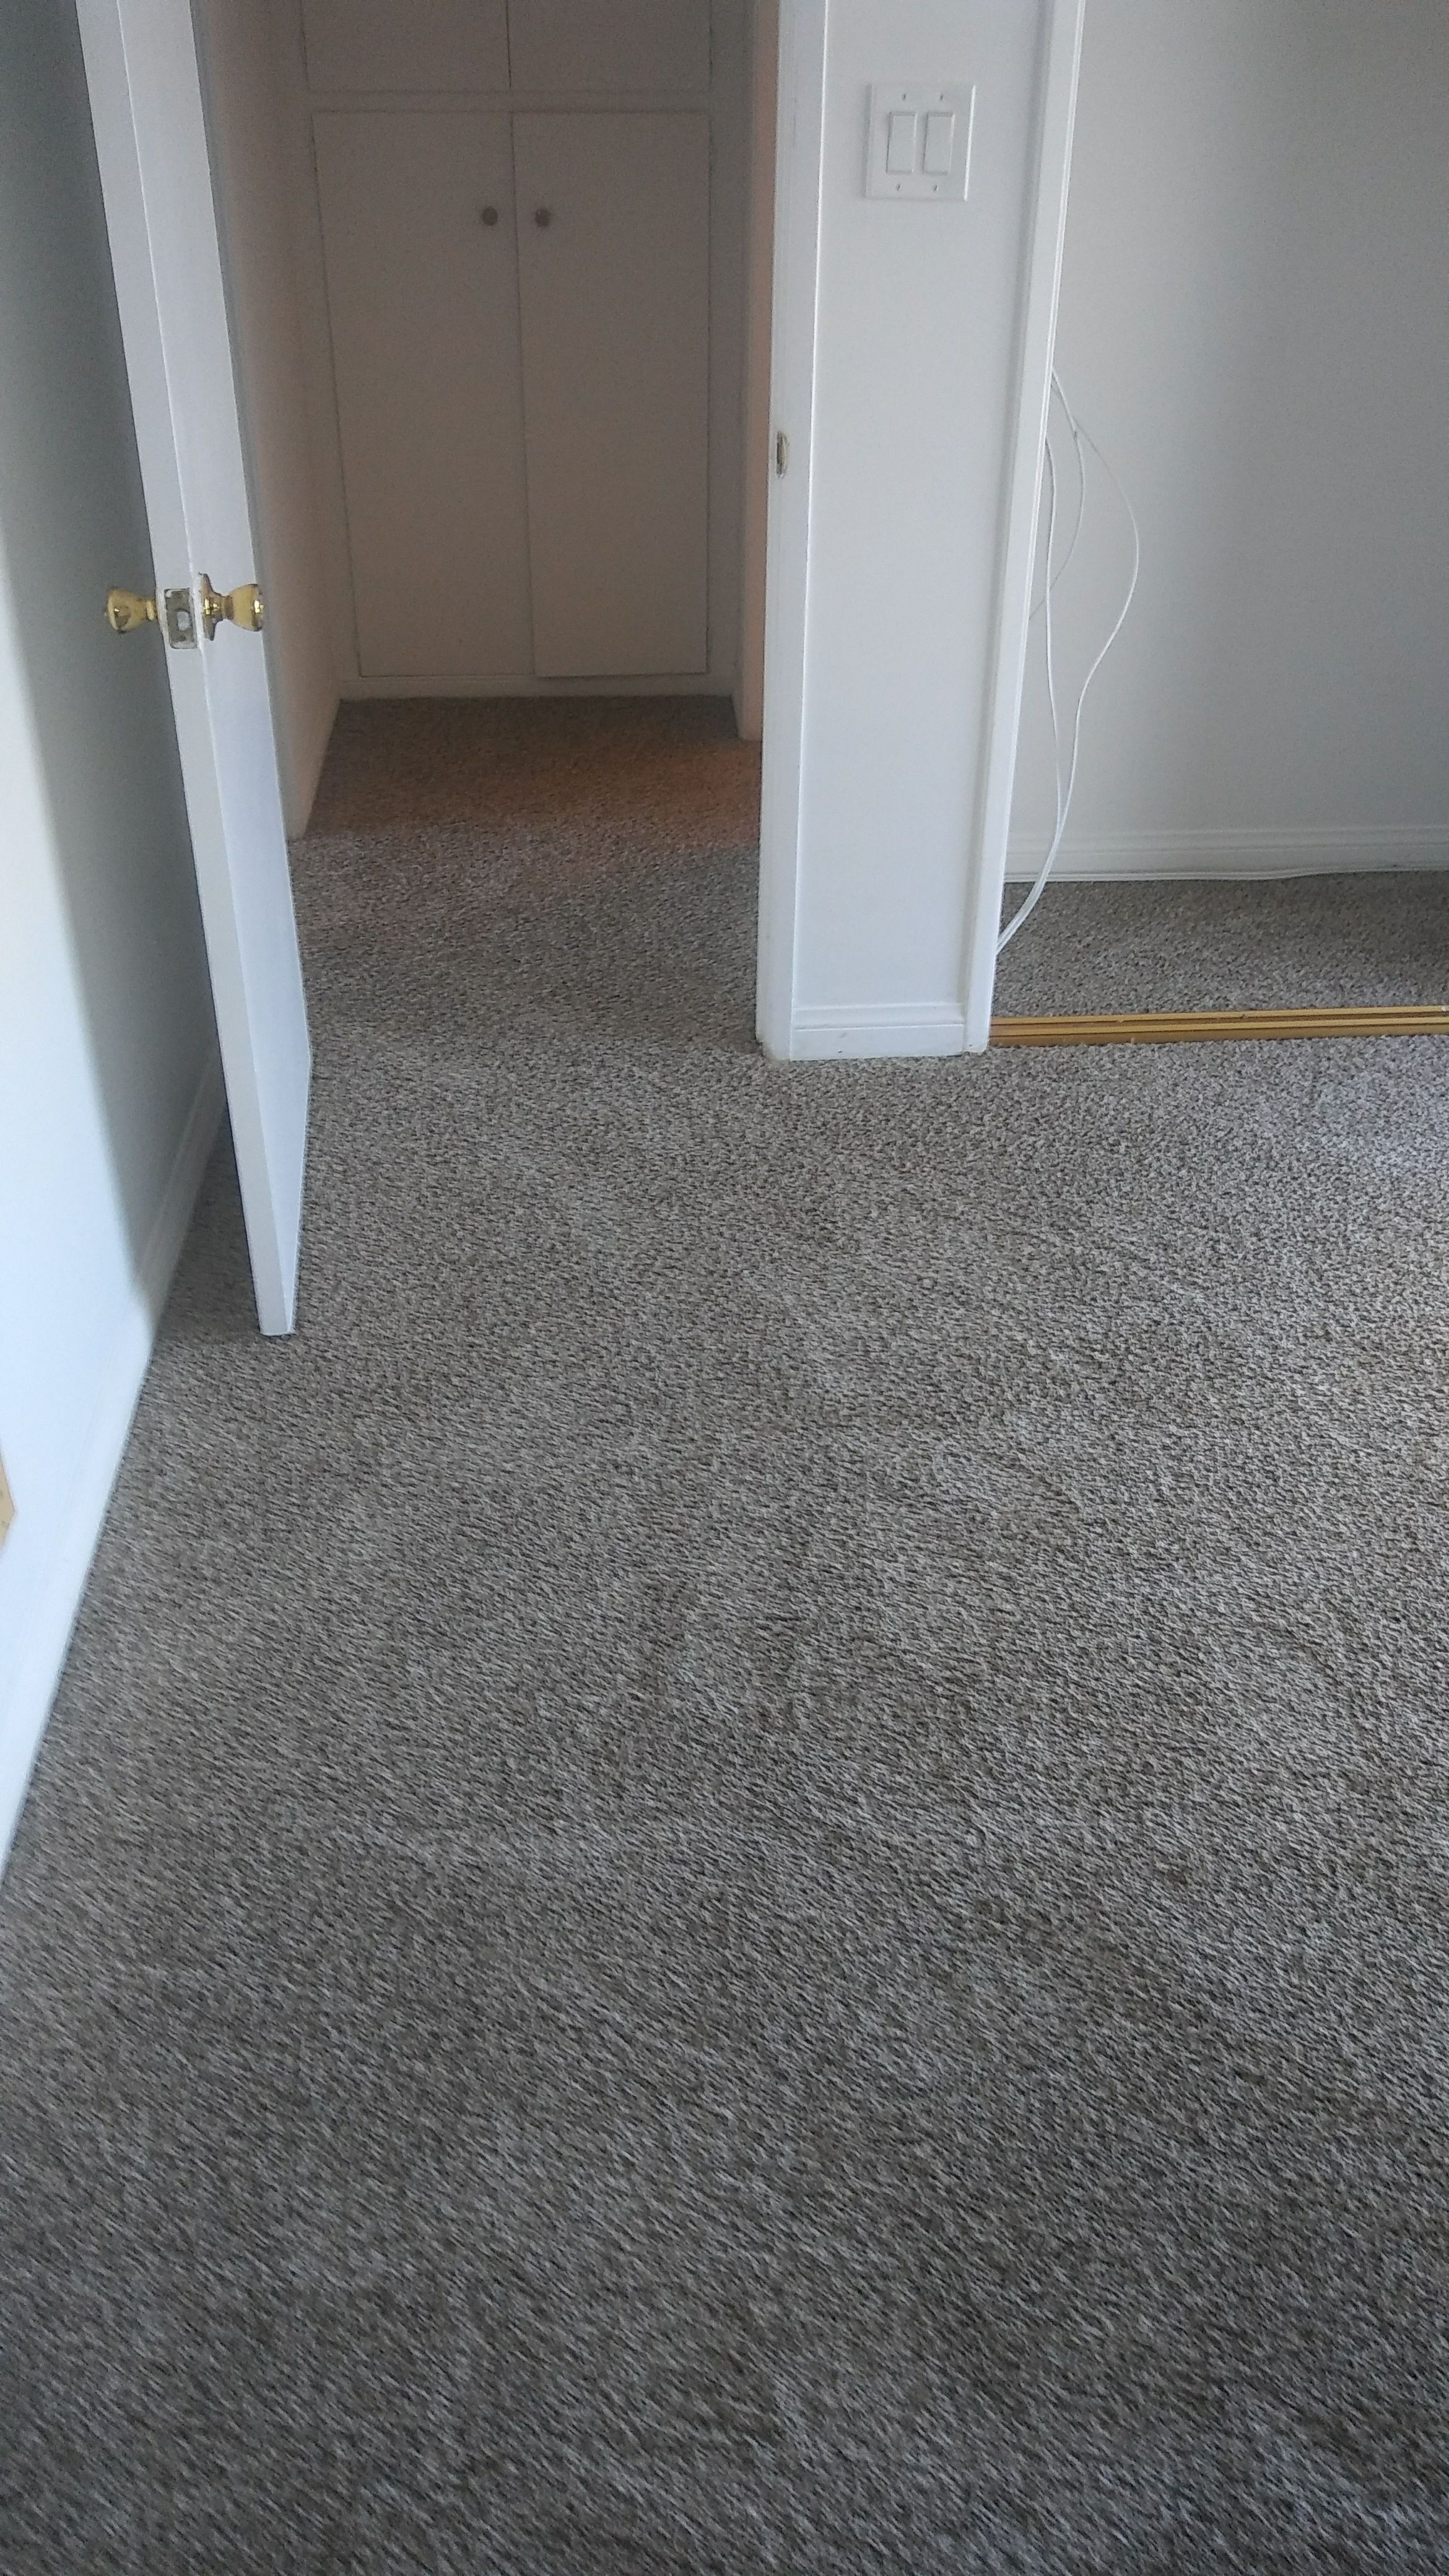 Check Out This Carpet Installation In Sequoia Marble Falls Color Flooring Carpet Installation Freeestimate Carpet Installation Flooring Floor Installation